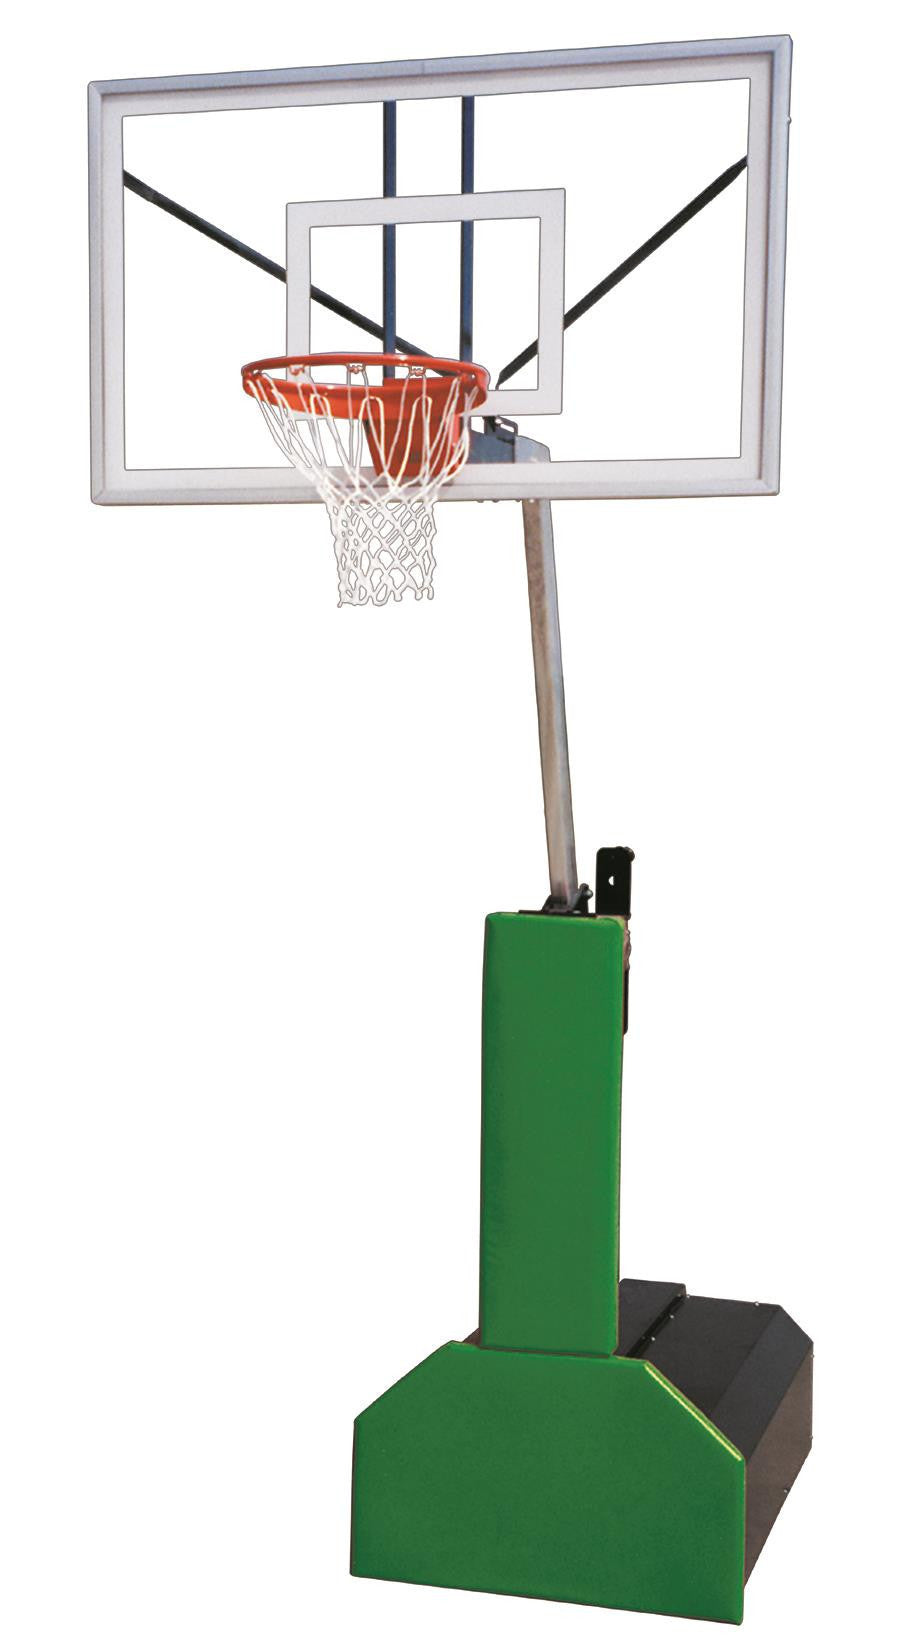 First Team Thunder Pro Portable Adjustable Basketball Hoop 60 inch Tempered Glass